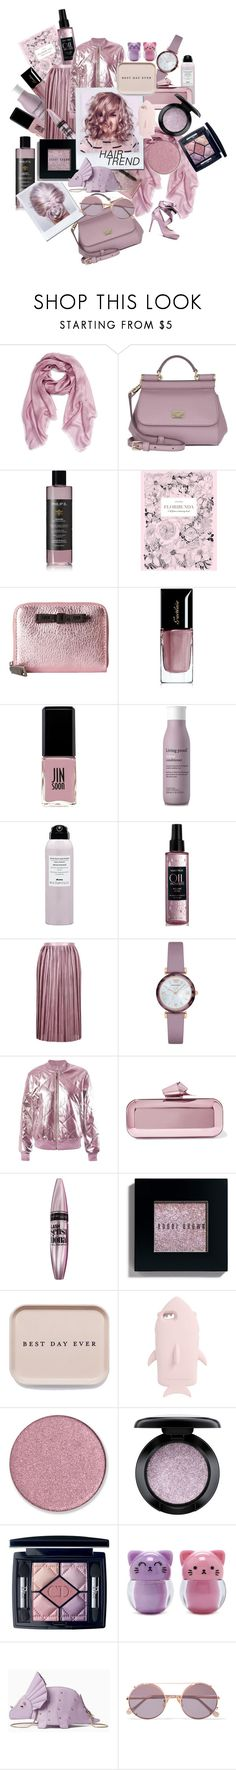 """Hello Pretty"" by numbsunday ❤ liked on Polyvore featuring beauty, Echo, Dolce&Gabbana, Philip B, Chronicle Books, Marc Jacobs, Guerlain, Jin Soon, Living Proof and Matrix Biolage"